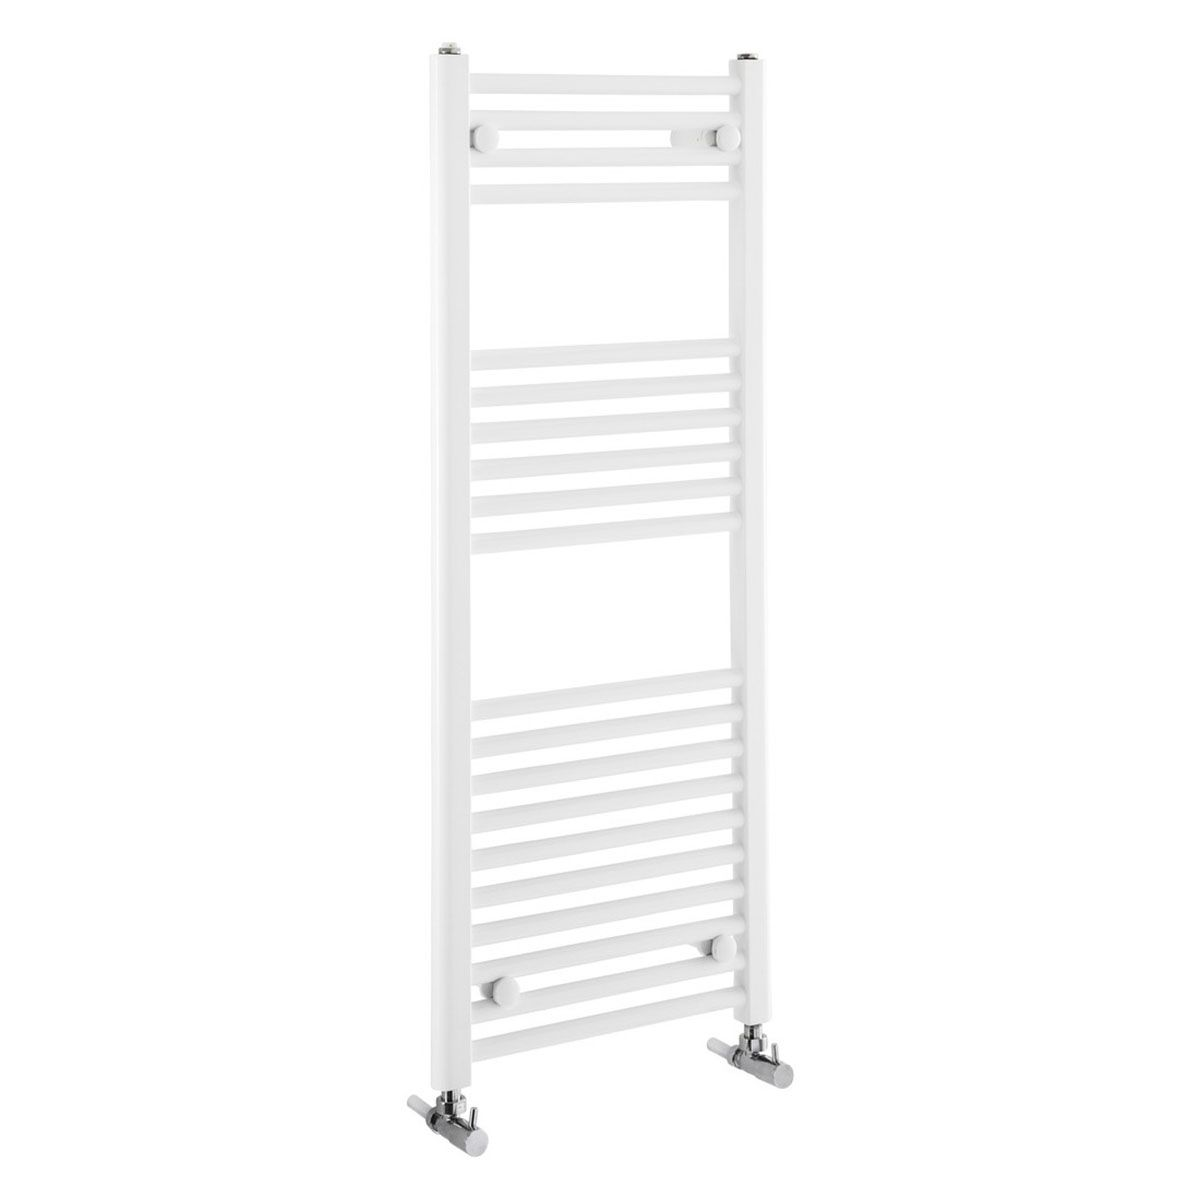 Frontline Flat White Heated Towel Rail With Multiple Hanging Areas W450 H1100